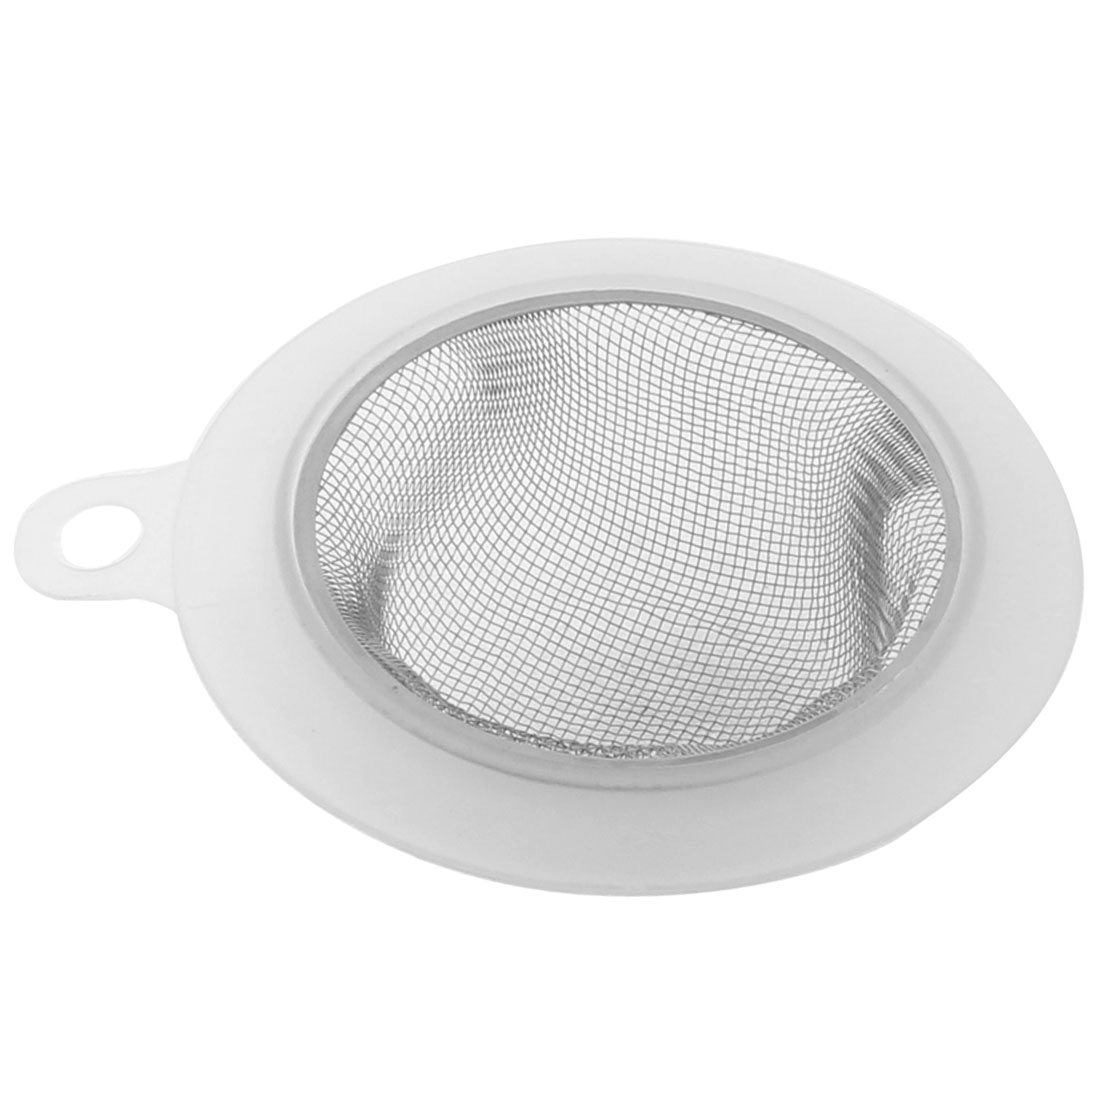 113mm Dia Home Kitchen Sink Basin Drain Waste Filter Strainer Silver Tone Clear